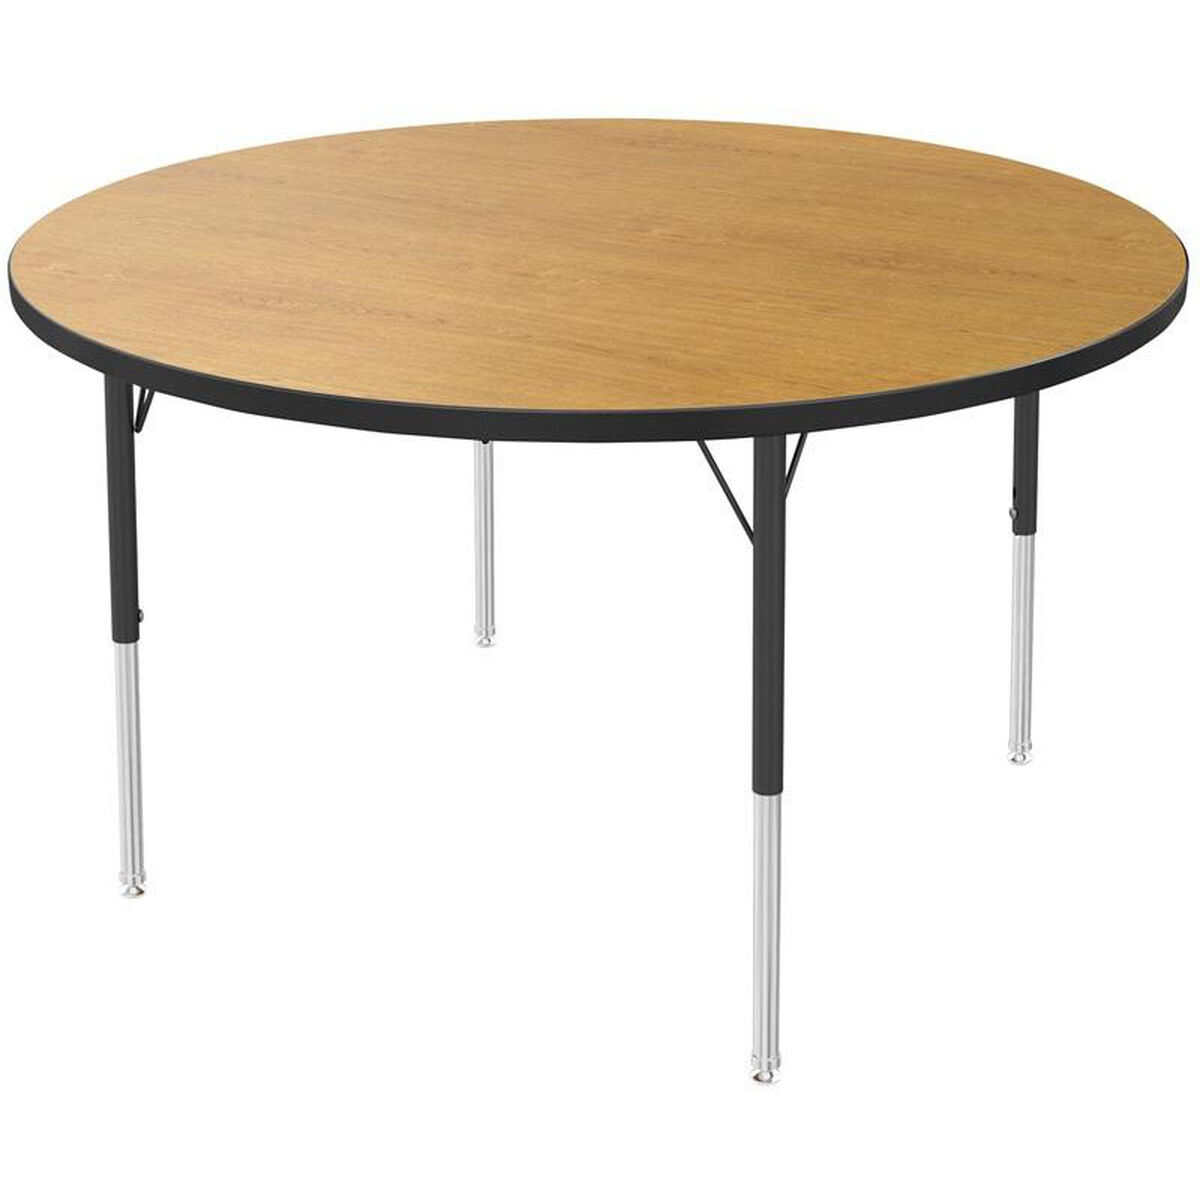 MG Round Kids Activity Table MG2266-49-ABLK   SchoolFurniture4Less.com